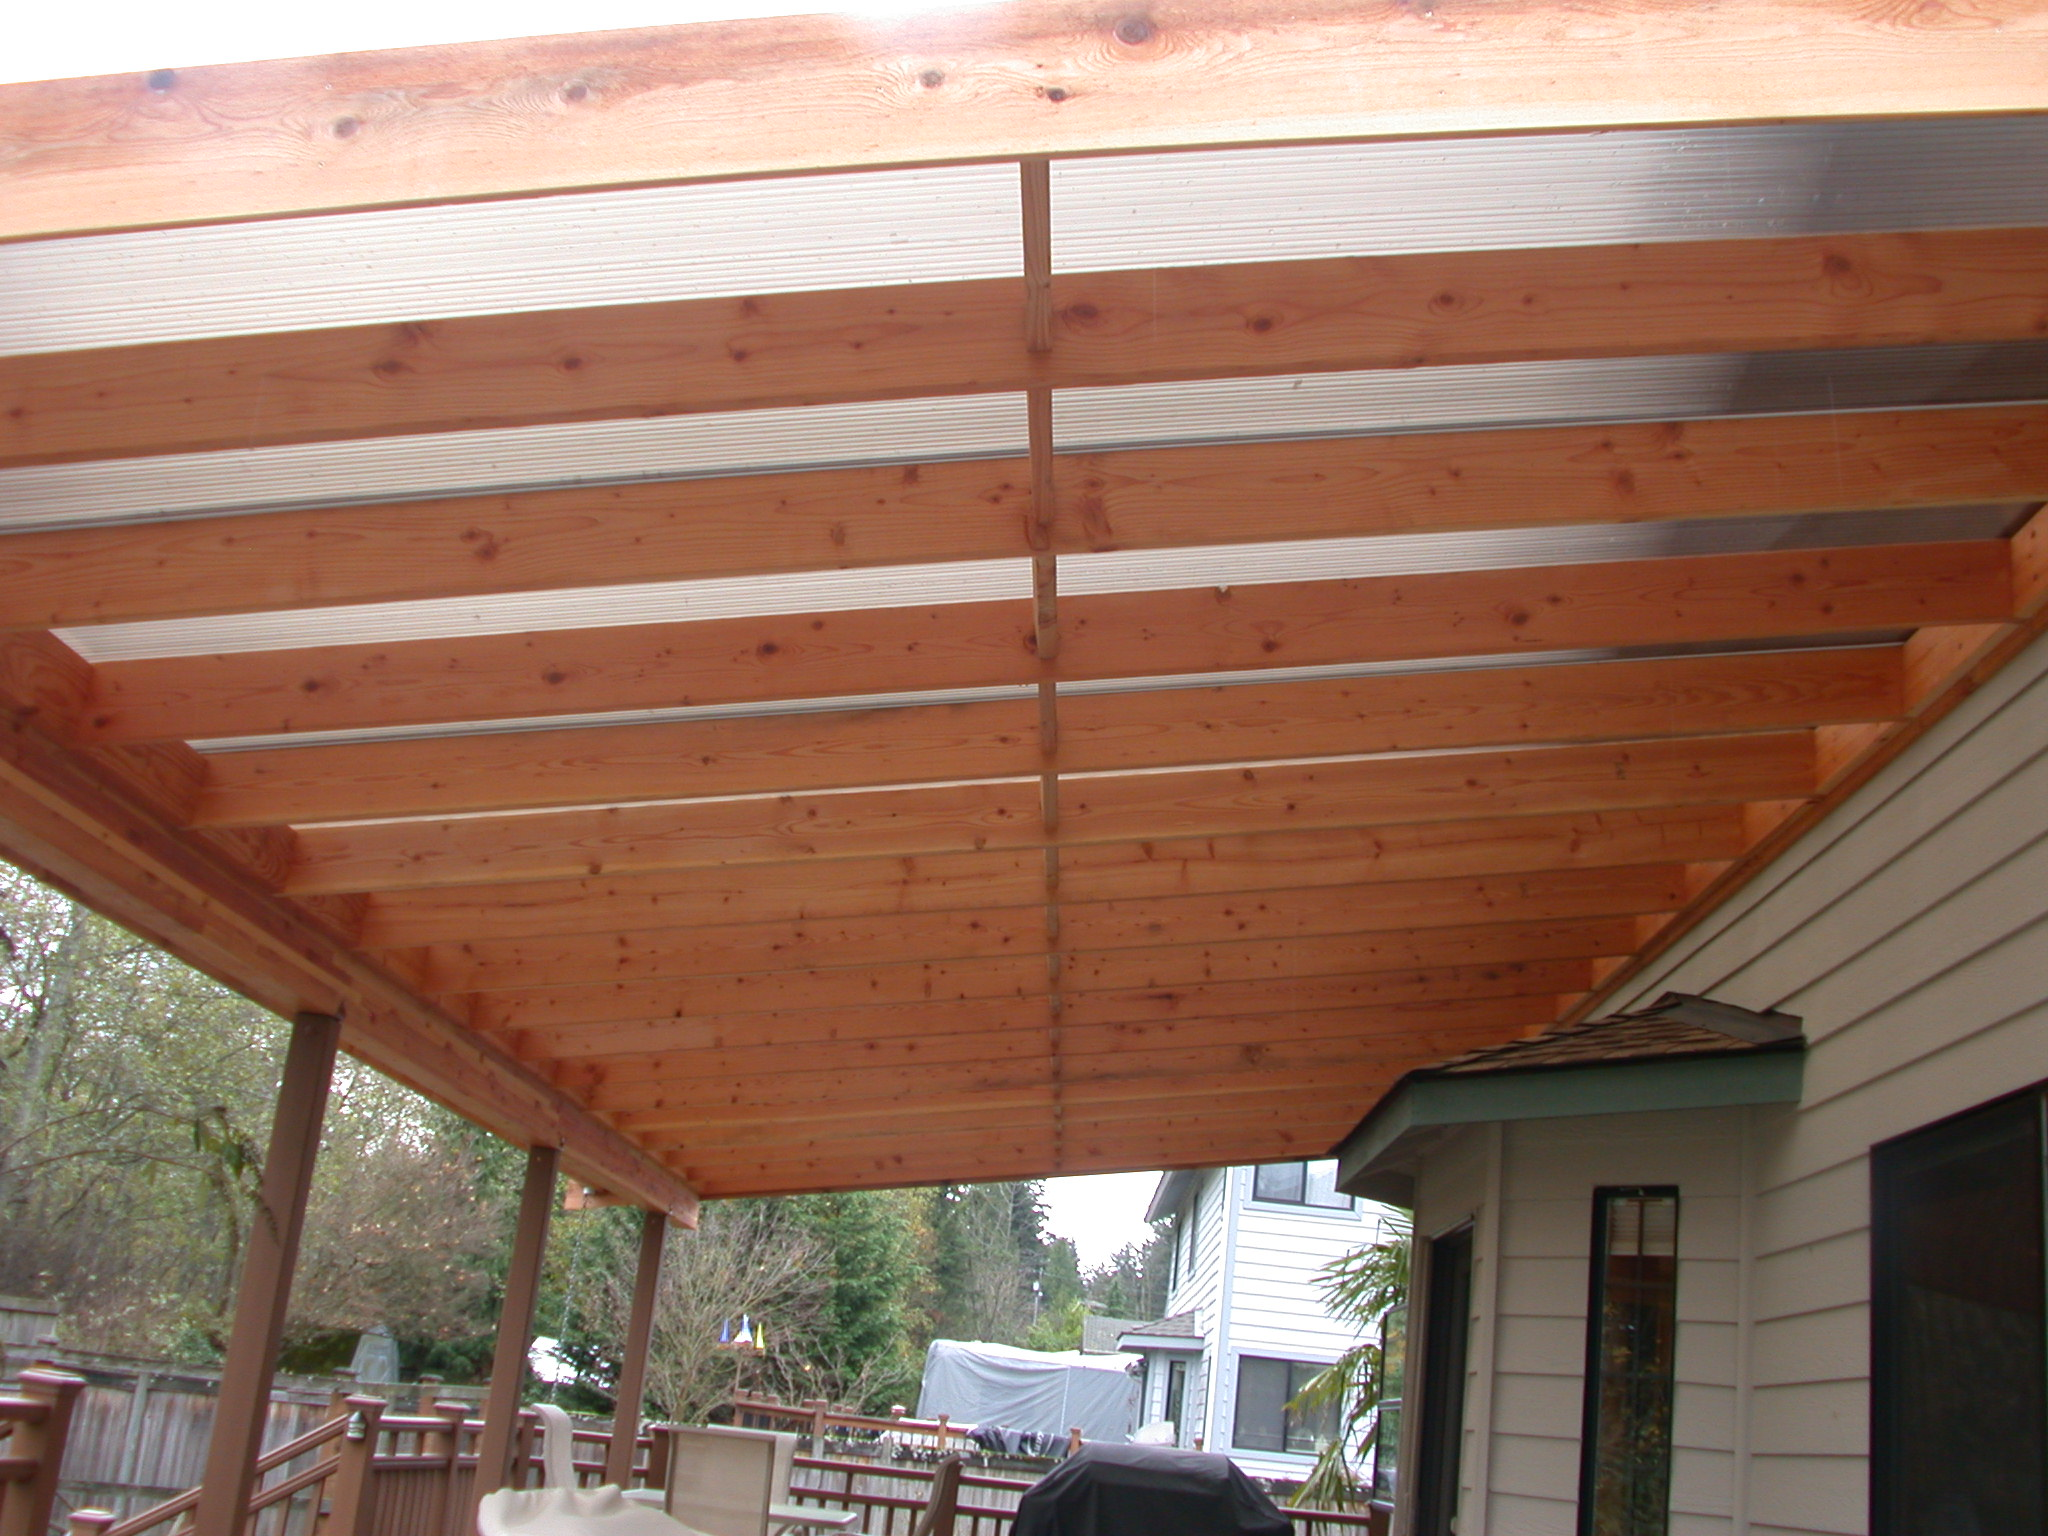 patio roof ideas on Pinterest   Patio Roof, 8 Seconds and ... on Roof For Patio Ideas id=80832